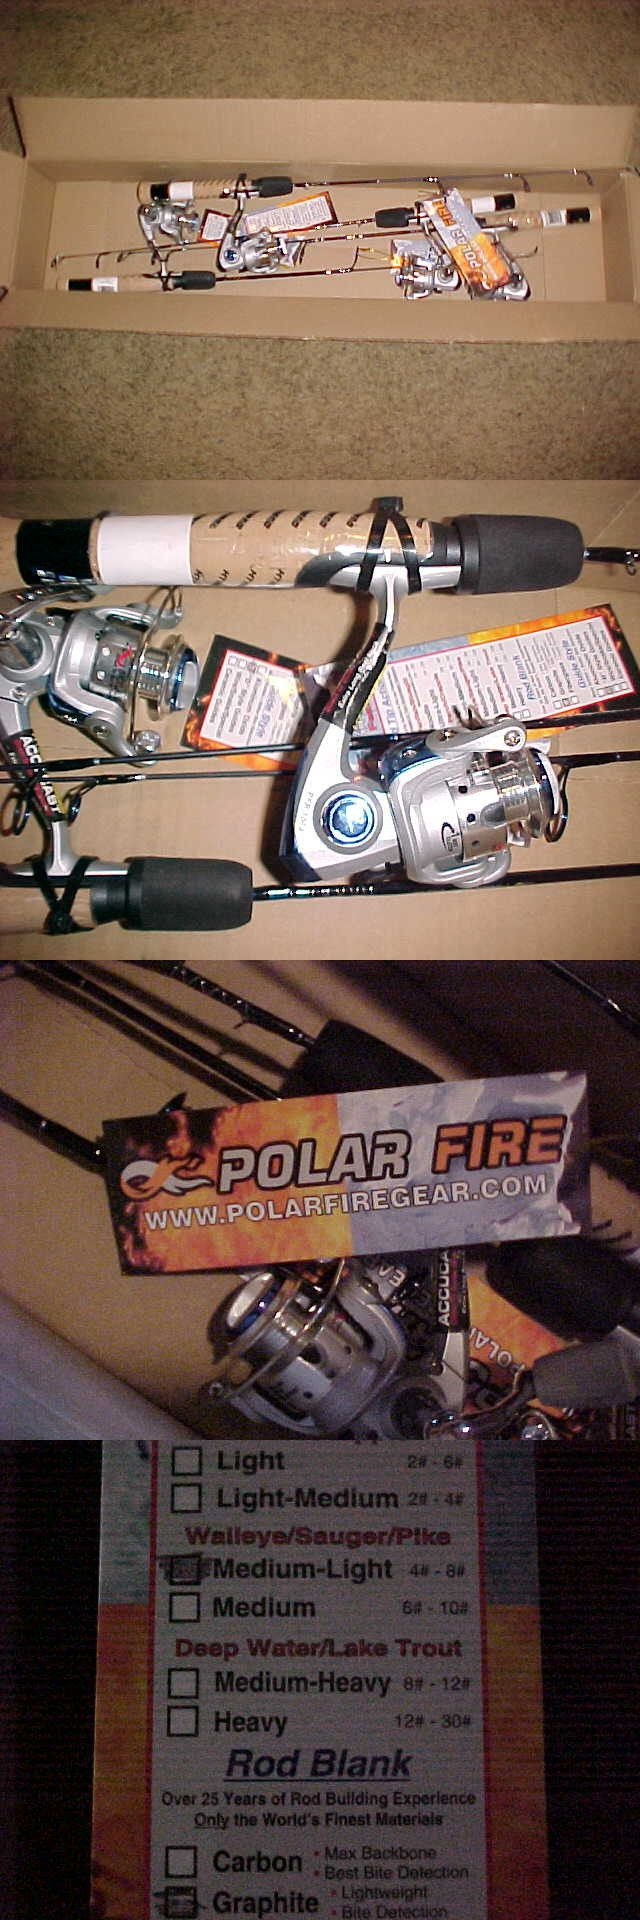 Ice Fishing Rods 179947: Ht Polar Fire Blue Select Ice Rod With Reels, Qty 4. Brand New Pfb-27Mlsc -> BUY IT NOW ONLY: $165.0 on eBay!